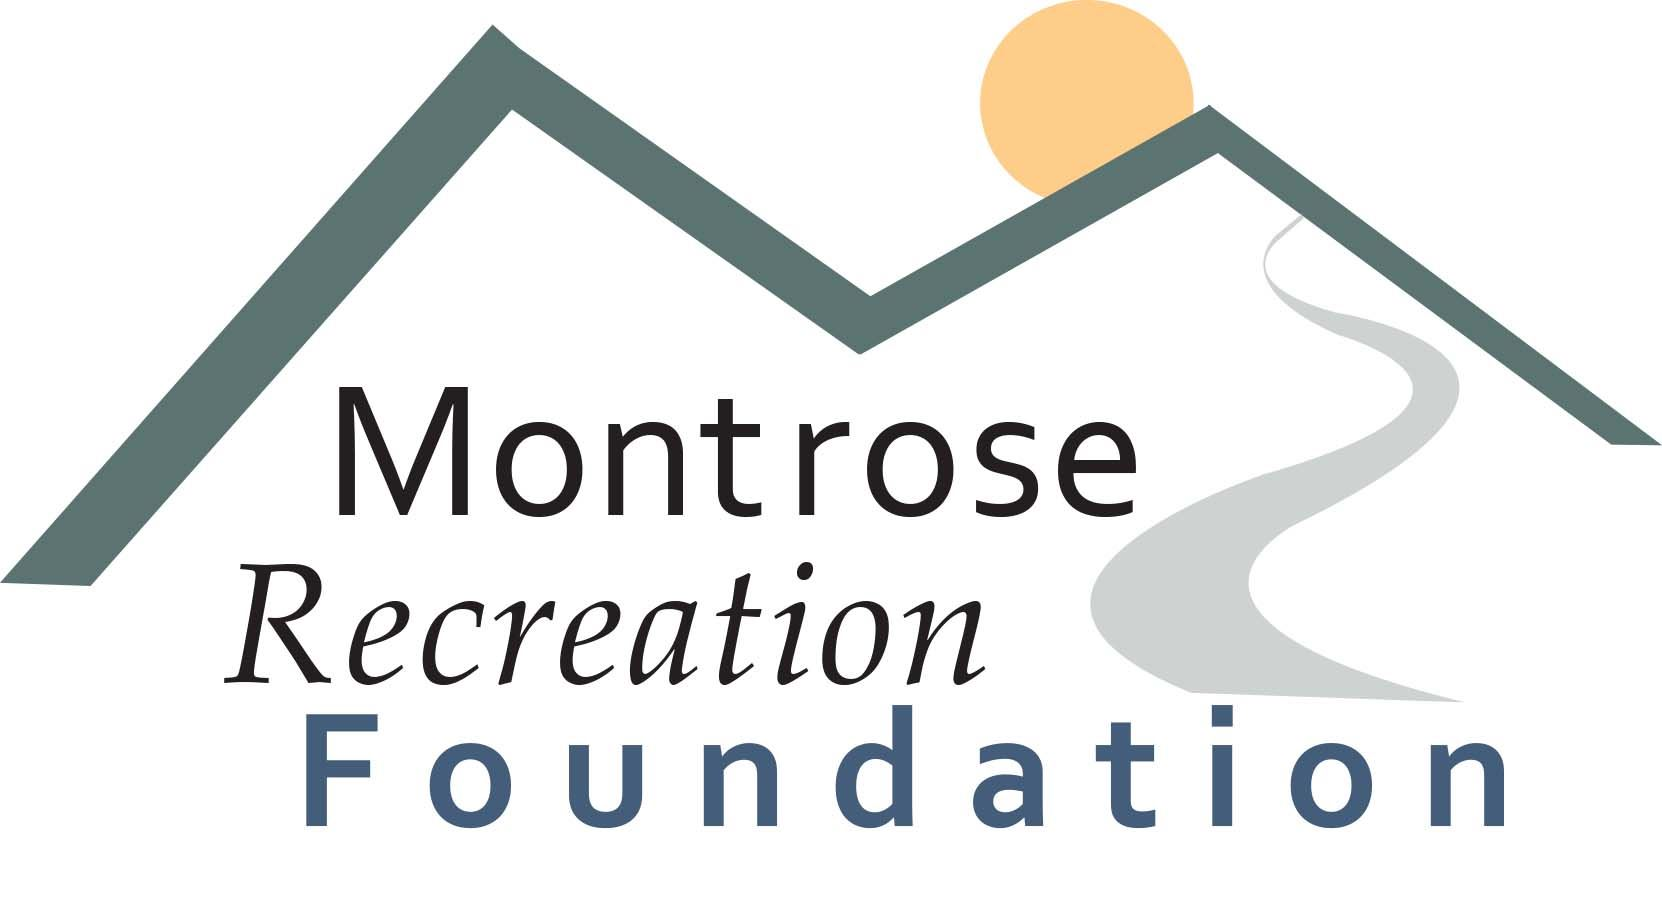 Montrose Recreation Foundation Logo